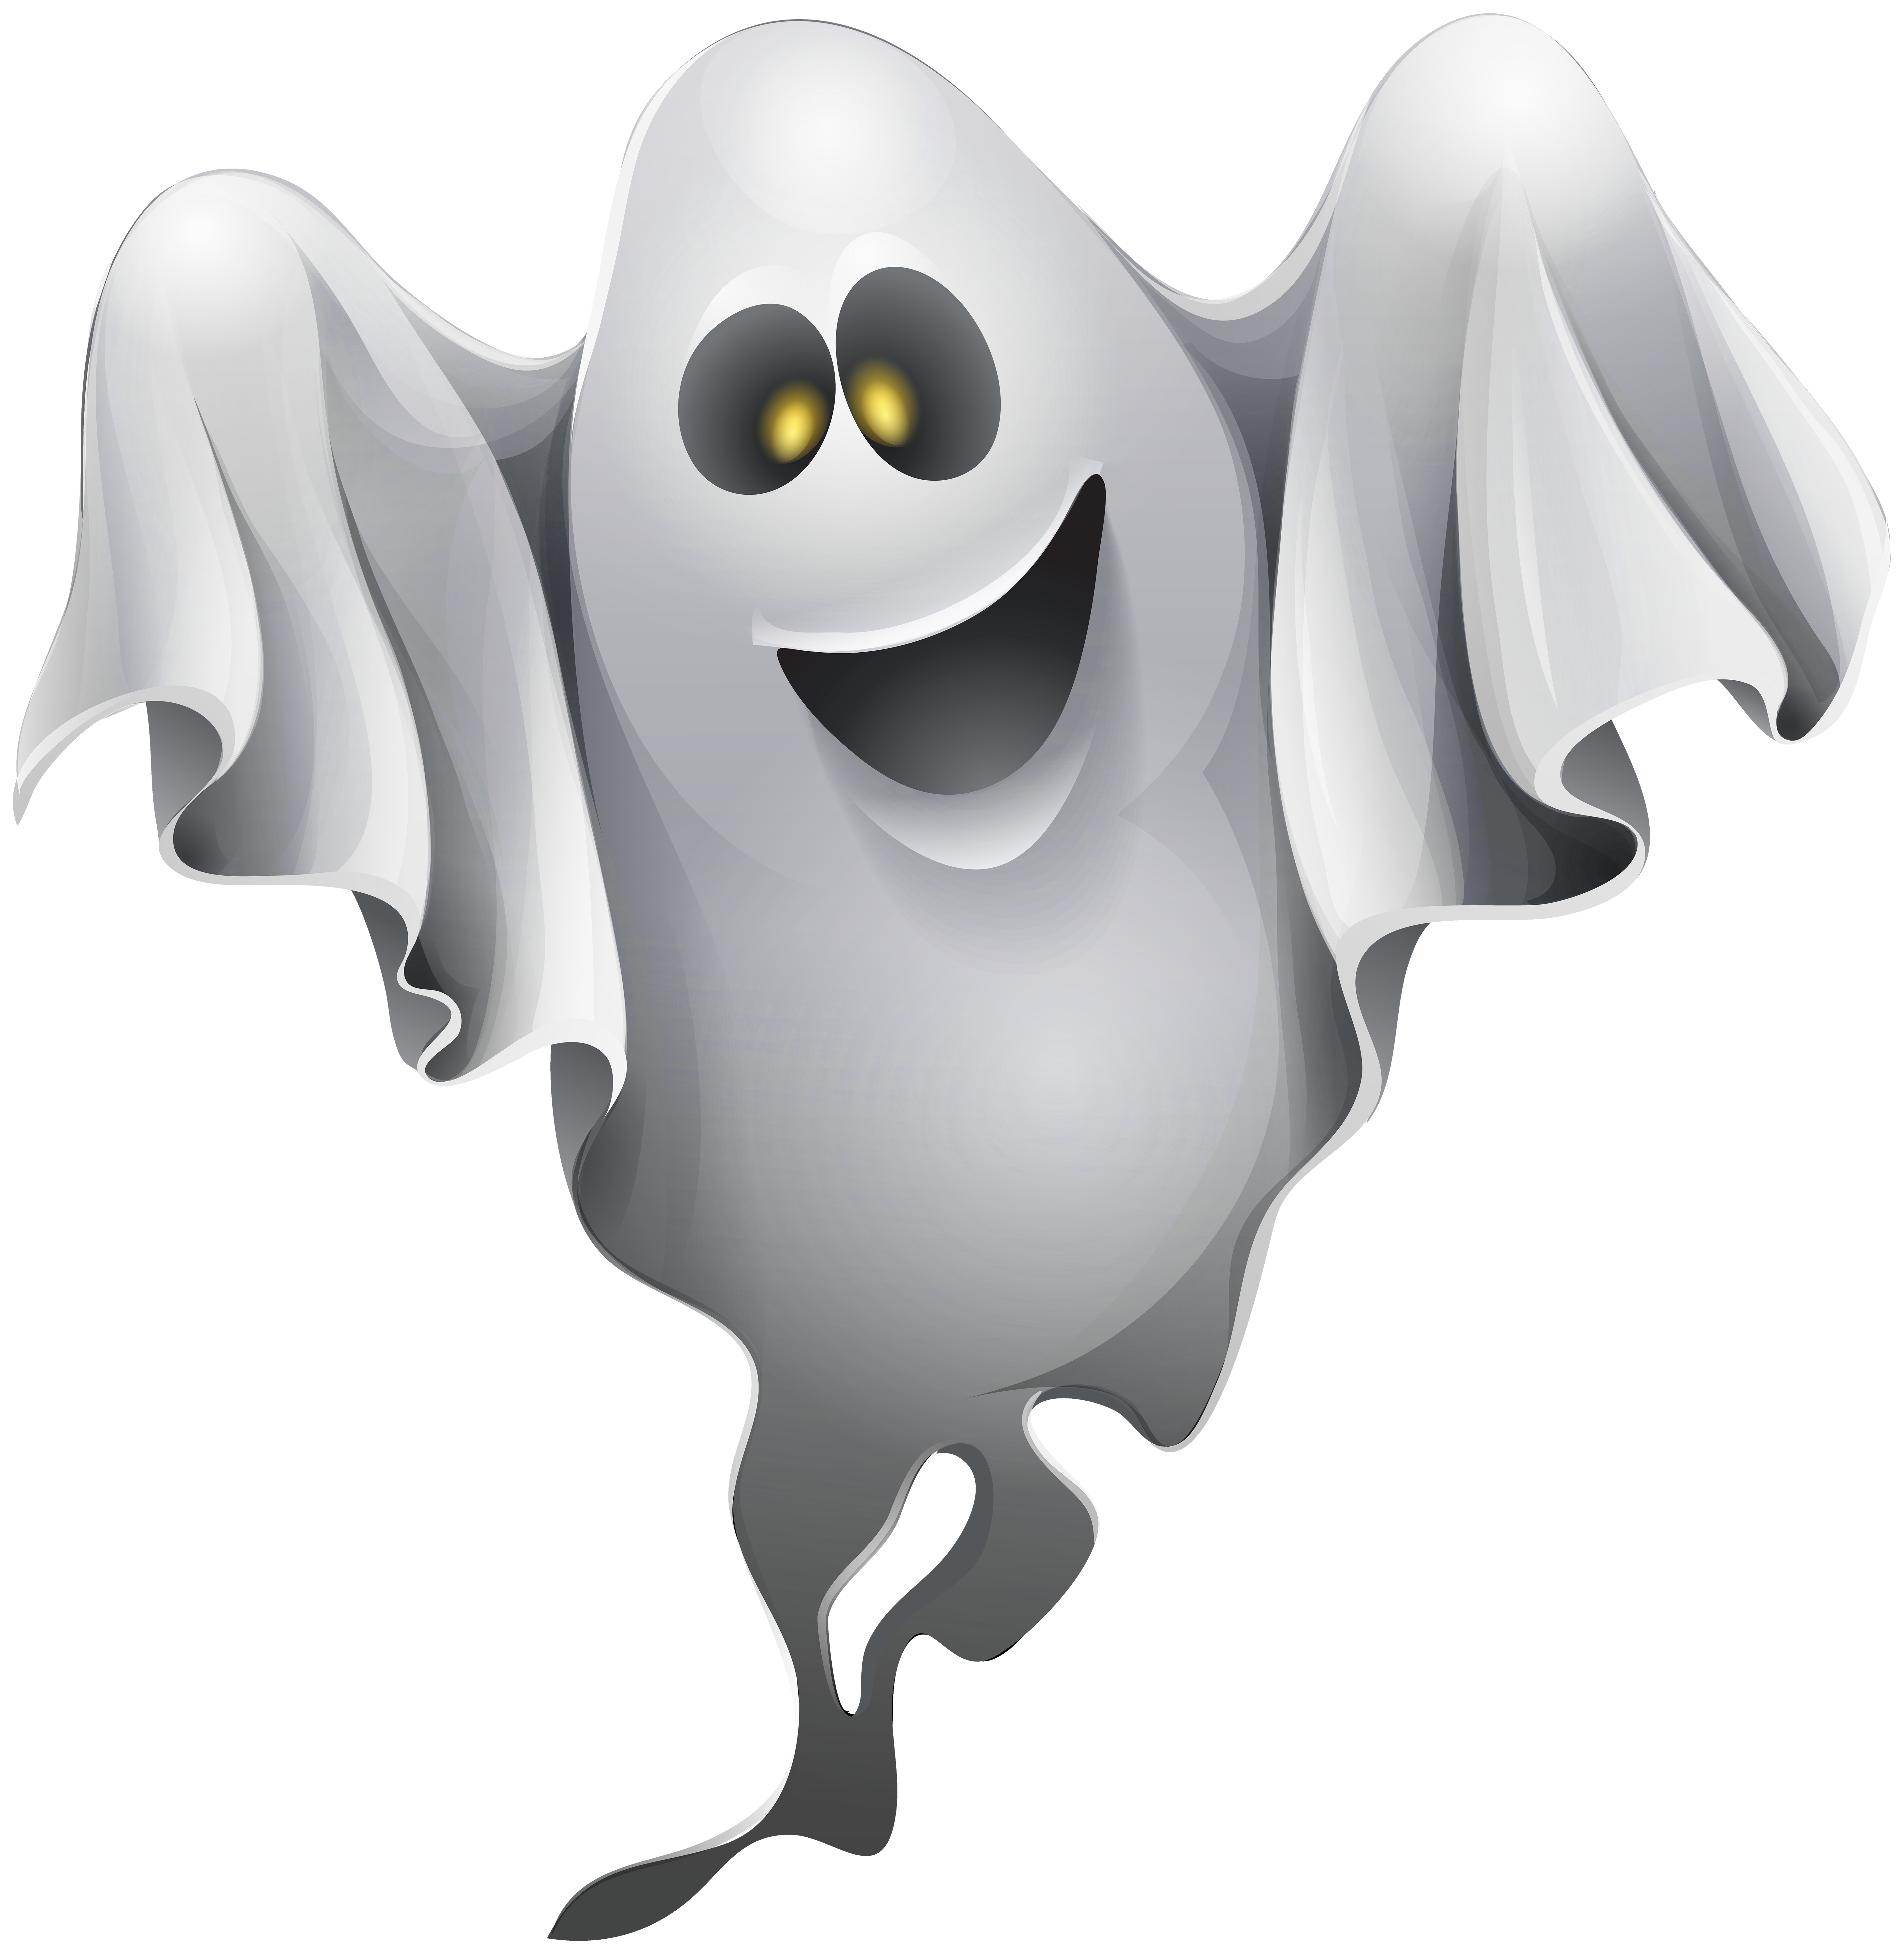 Ghost clipart png. Halloween clip art image